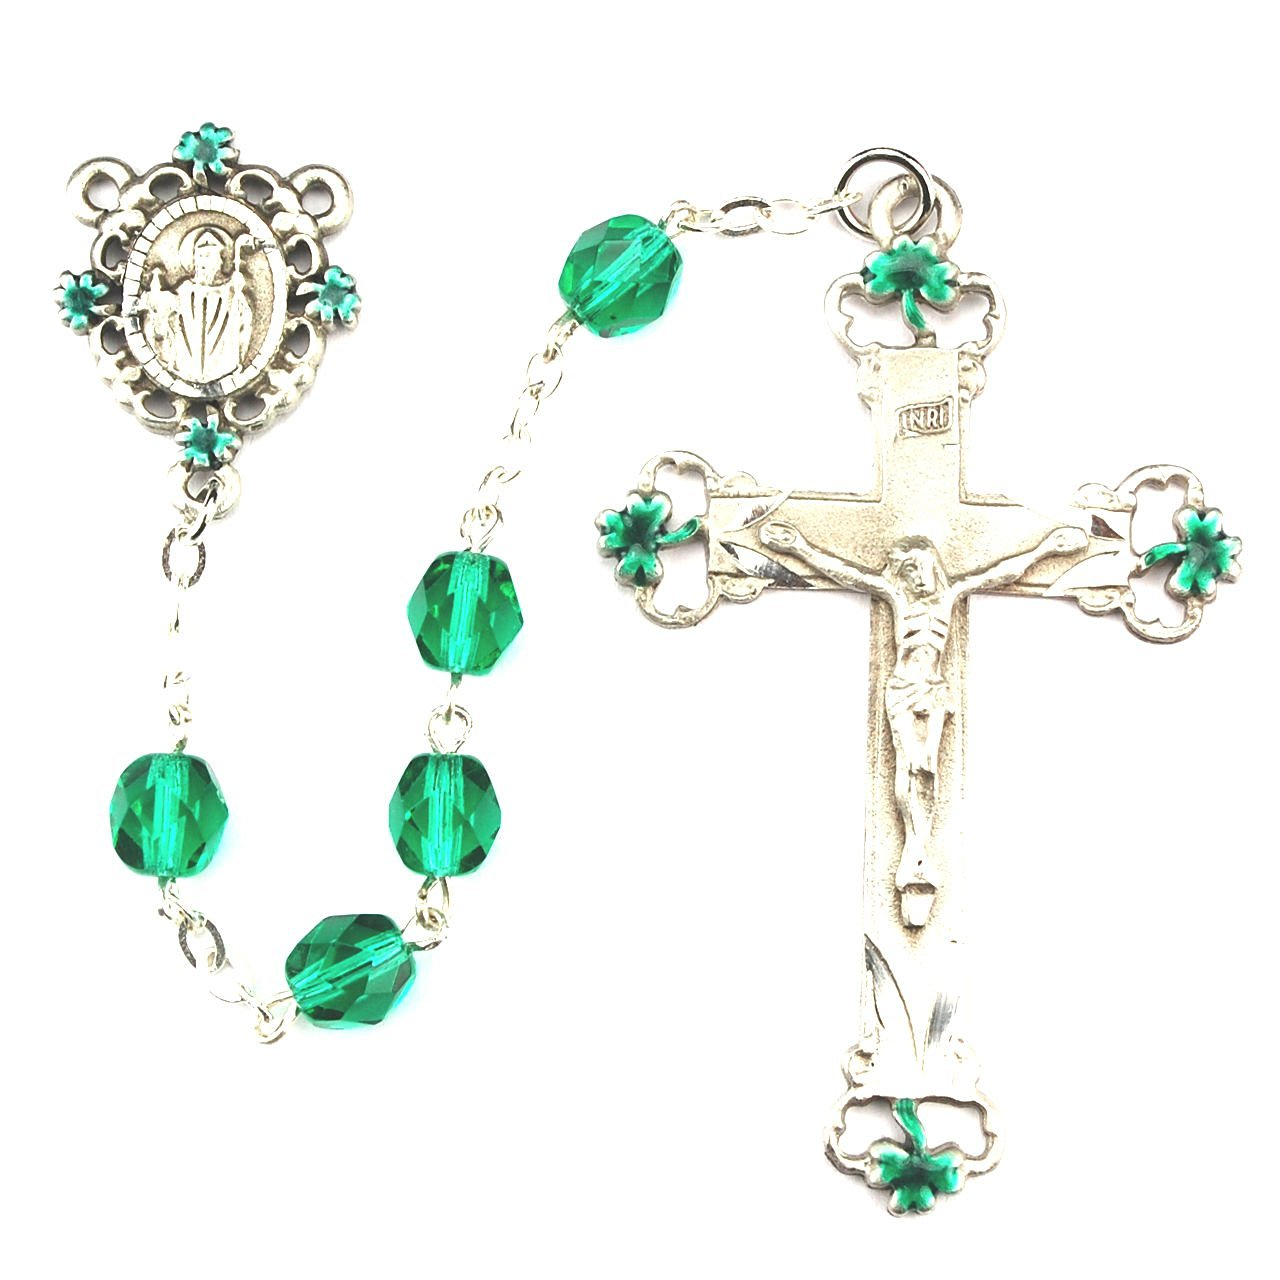 Green and Black St. Patrick Irish Catholic Rosary Beads - 7mm Green and Black Glass Beads and a New England Pewter Crucifix and St. Patrick Centerpiece with Green Enameled Shamrocks on the Crucifix and Centerpiece.